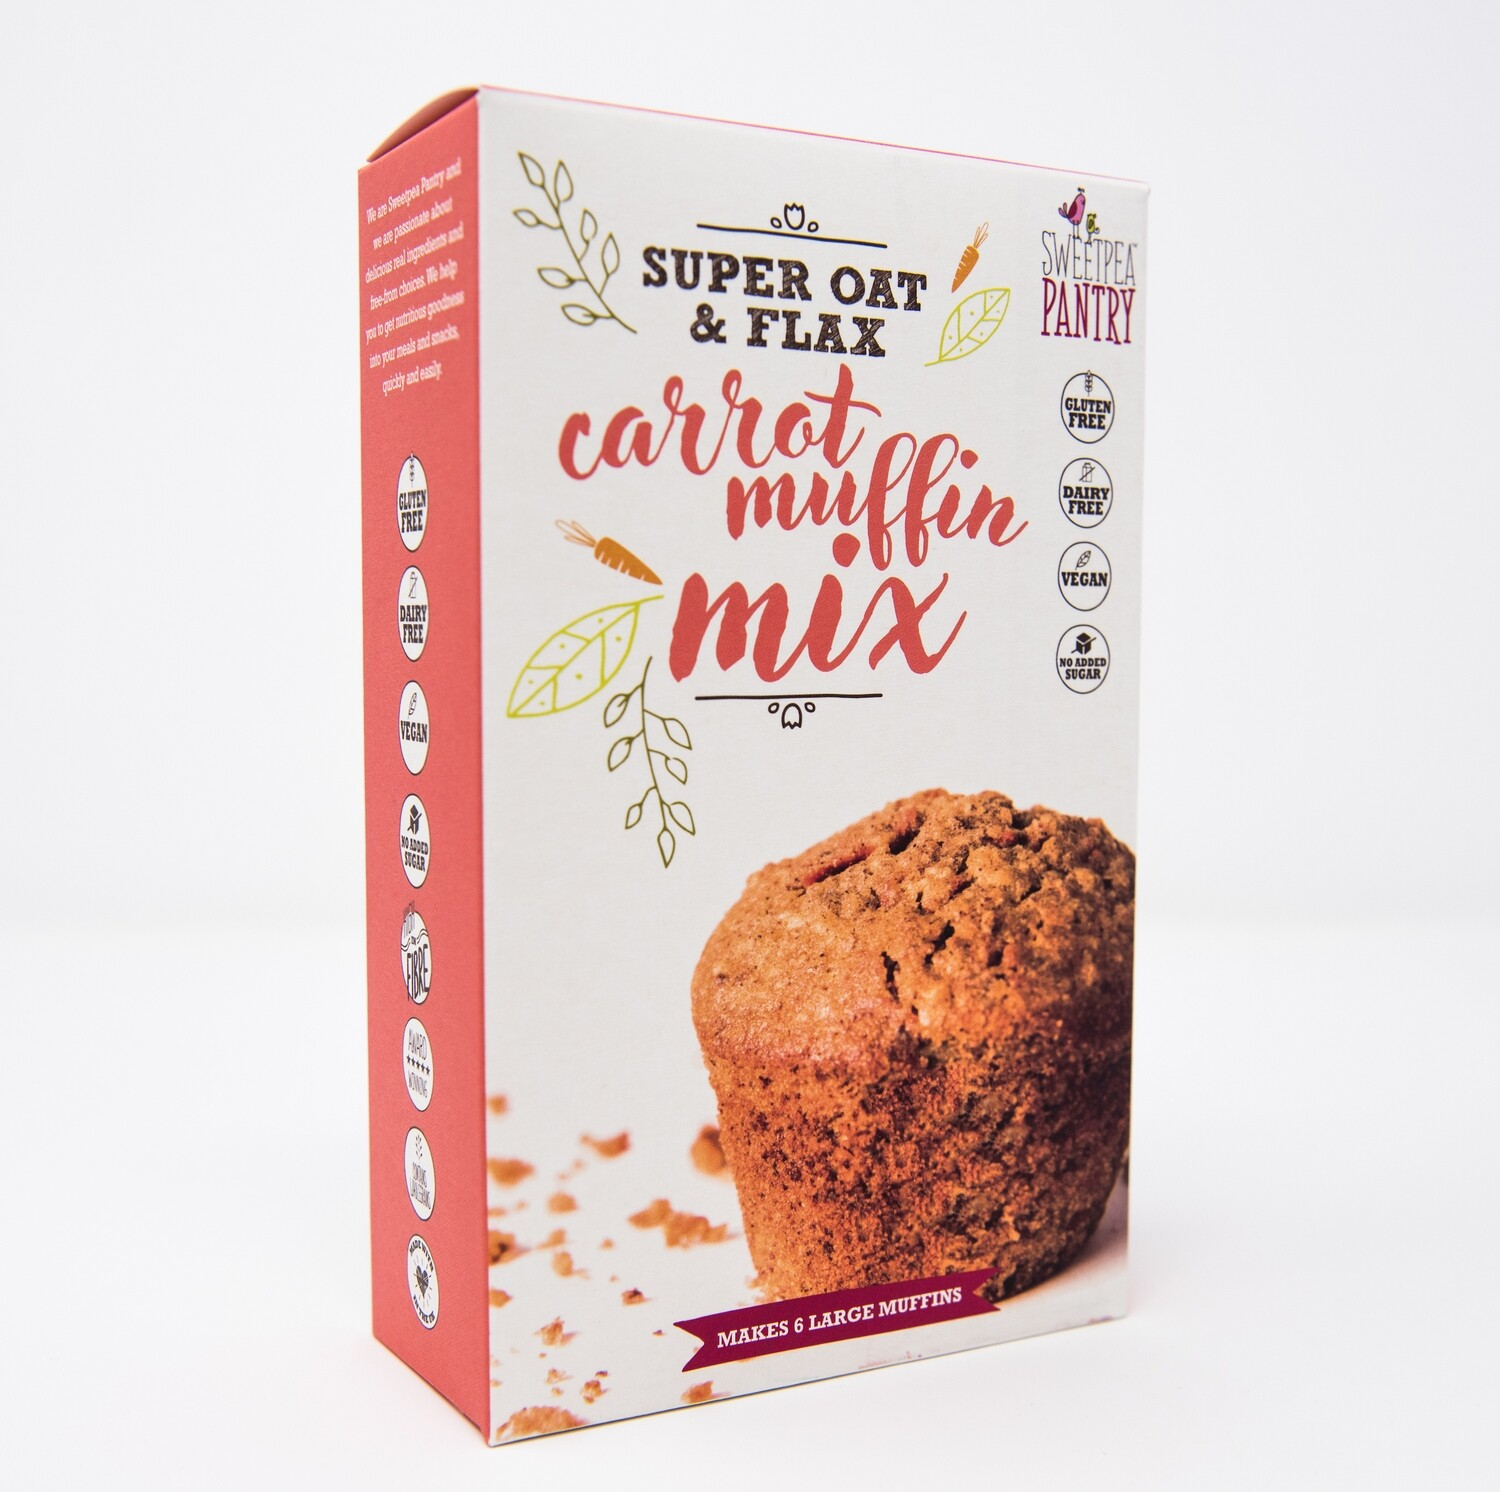 Carrot Muffin Mix with oats and flax (gluten-free)